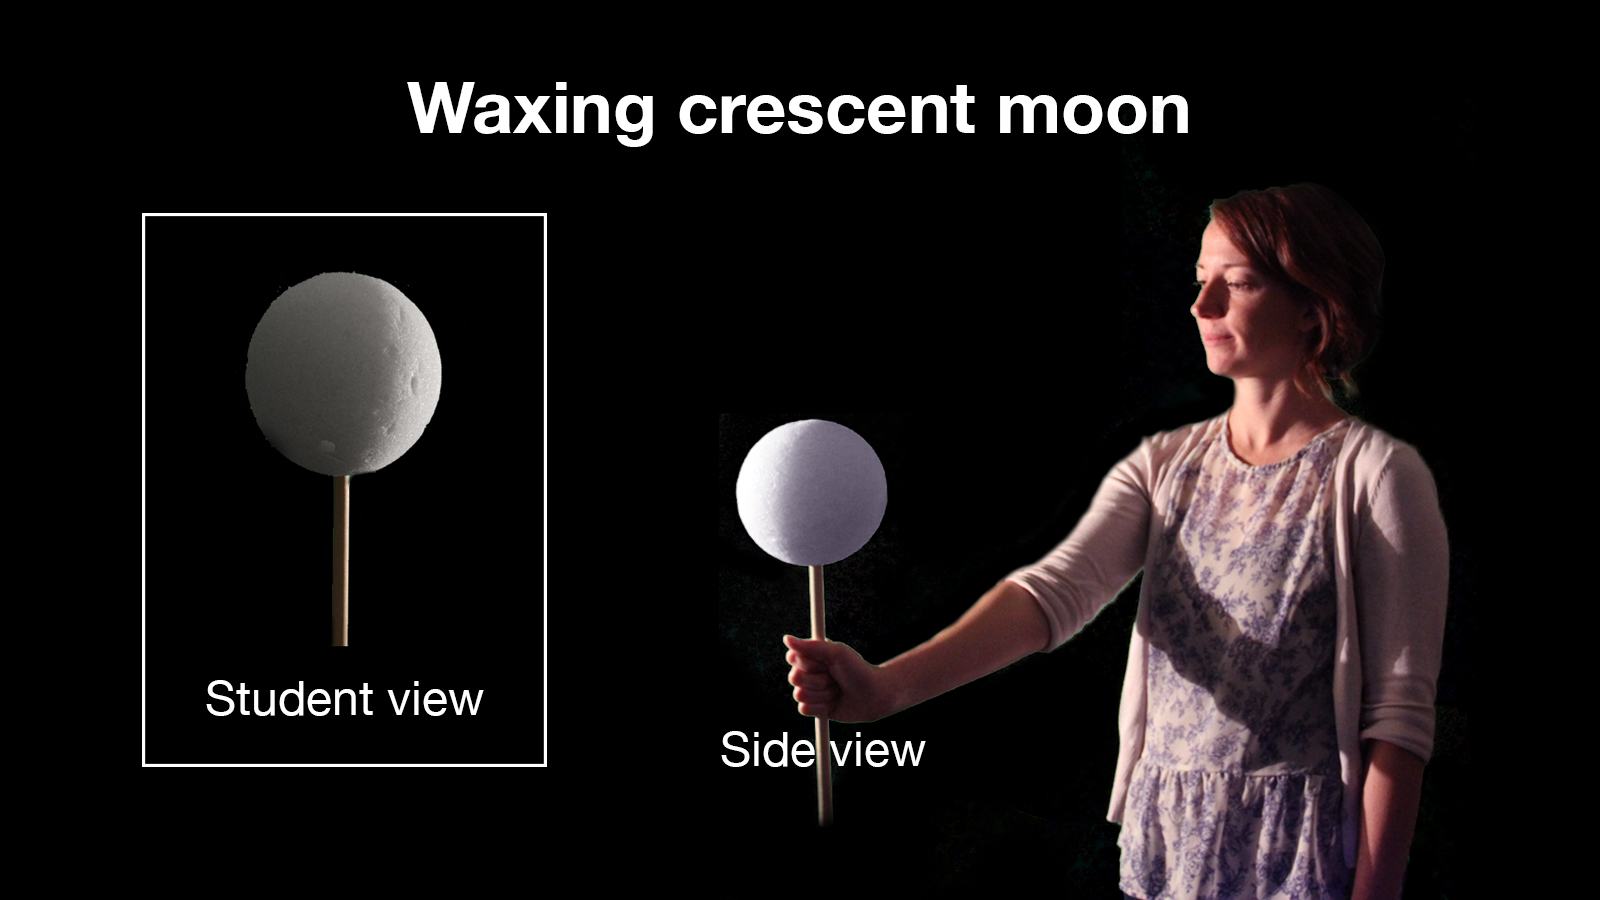 Waxing Crescent – Moon Phases Activity from NASA-JPL Education